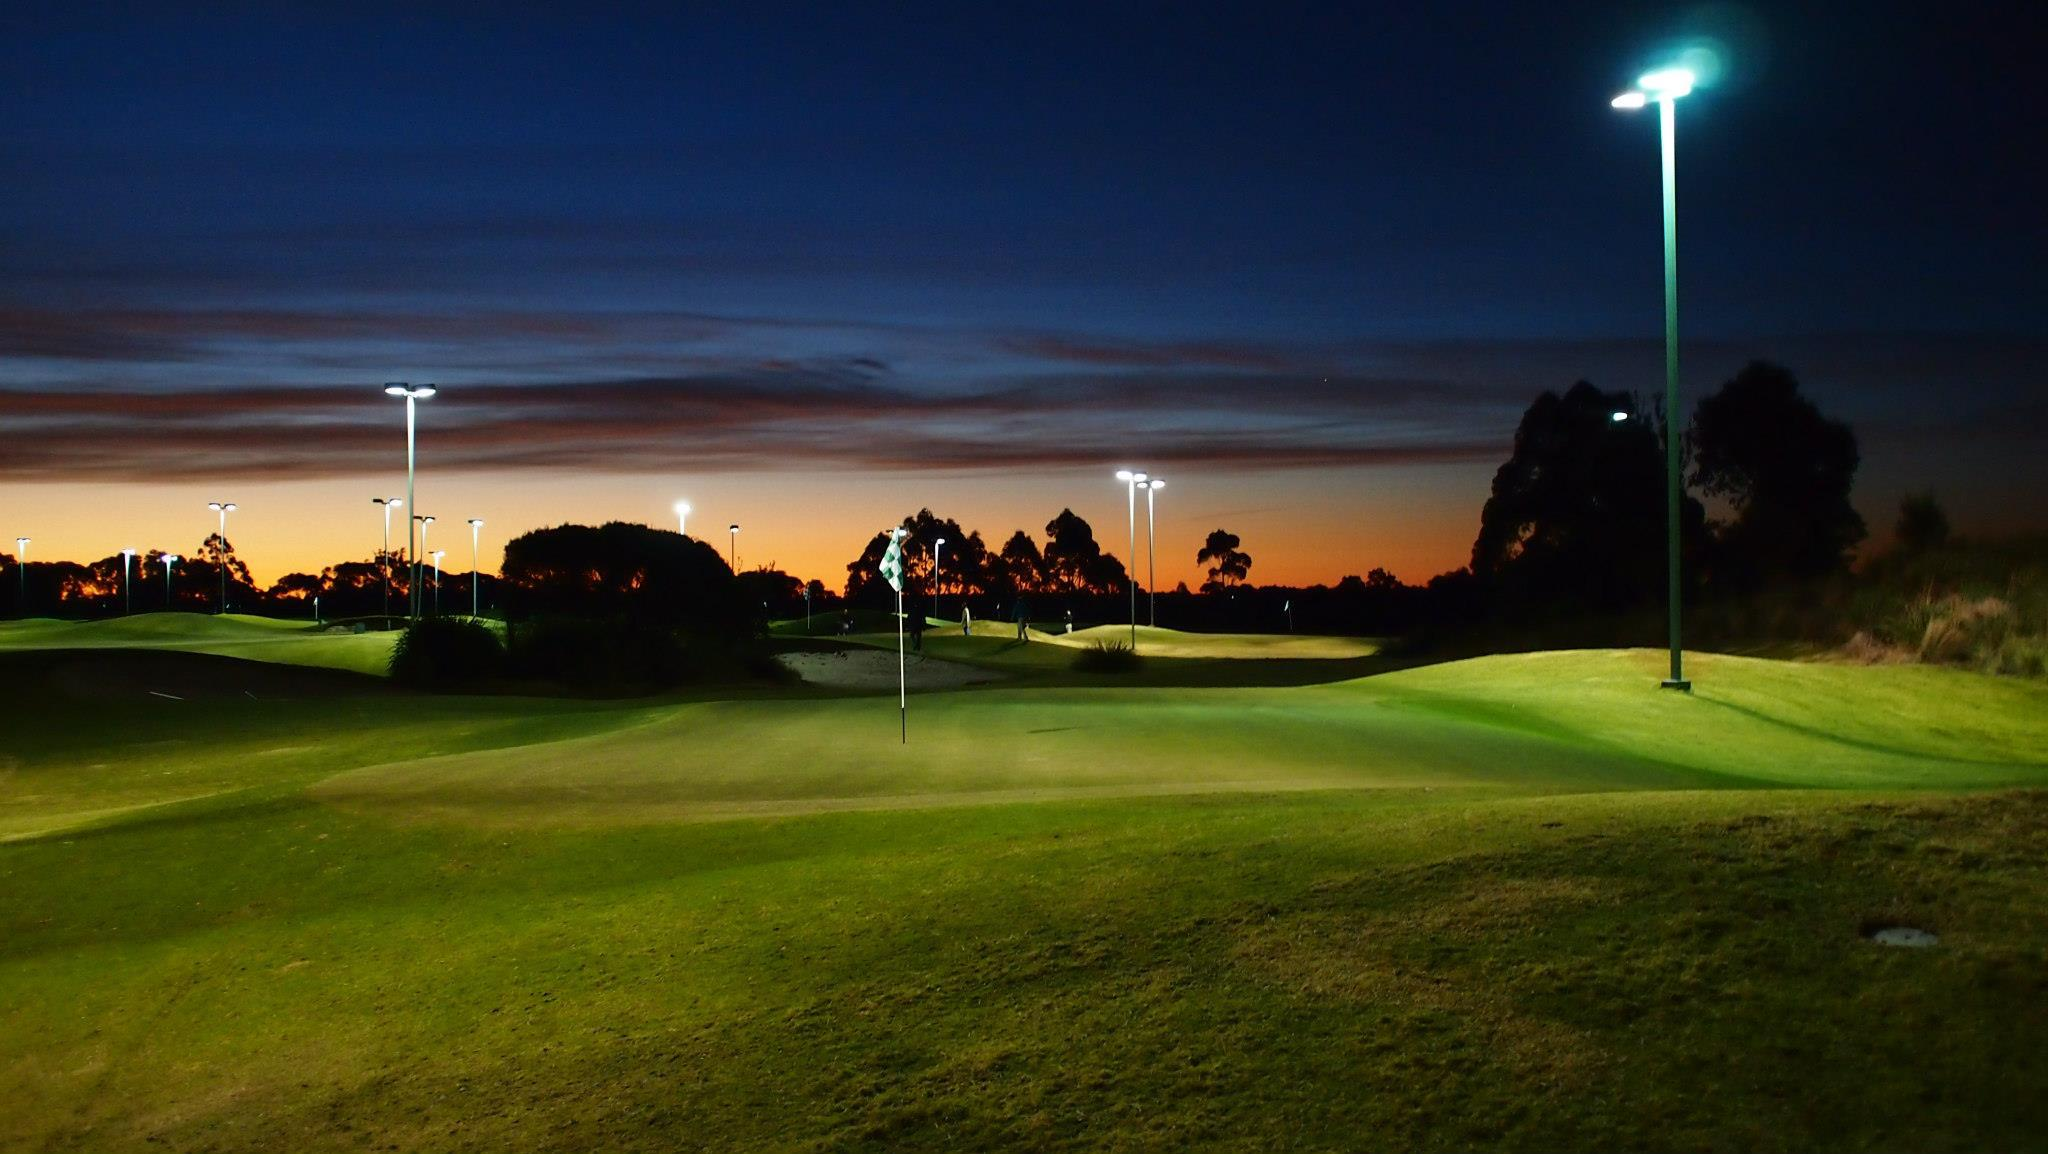 Golfers Are Putting Golf In The Evening Golf Course Golf